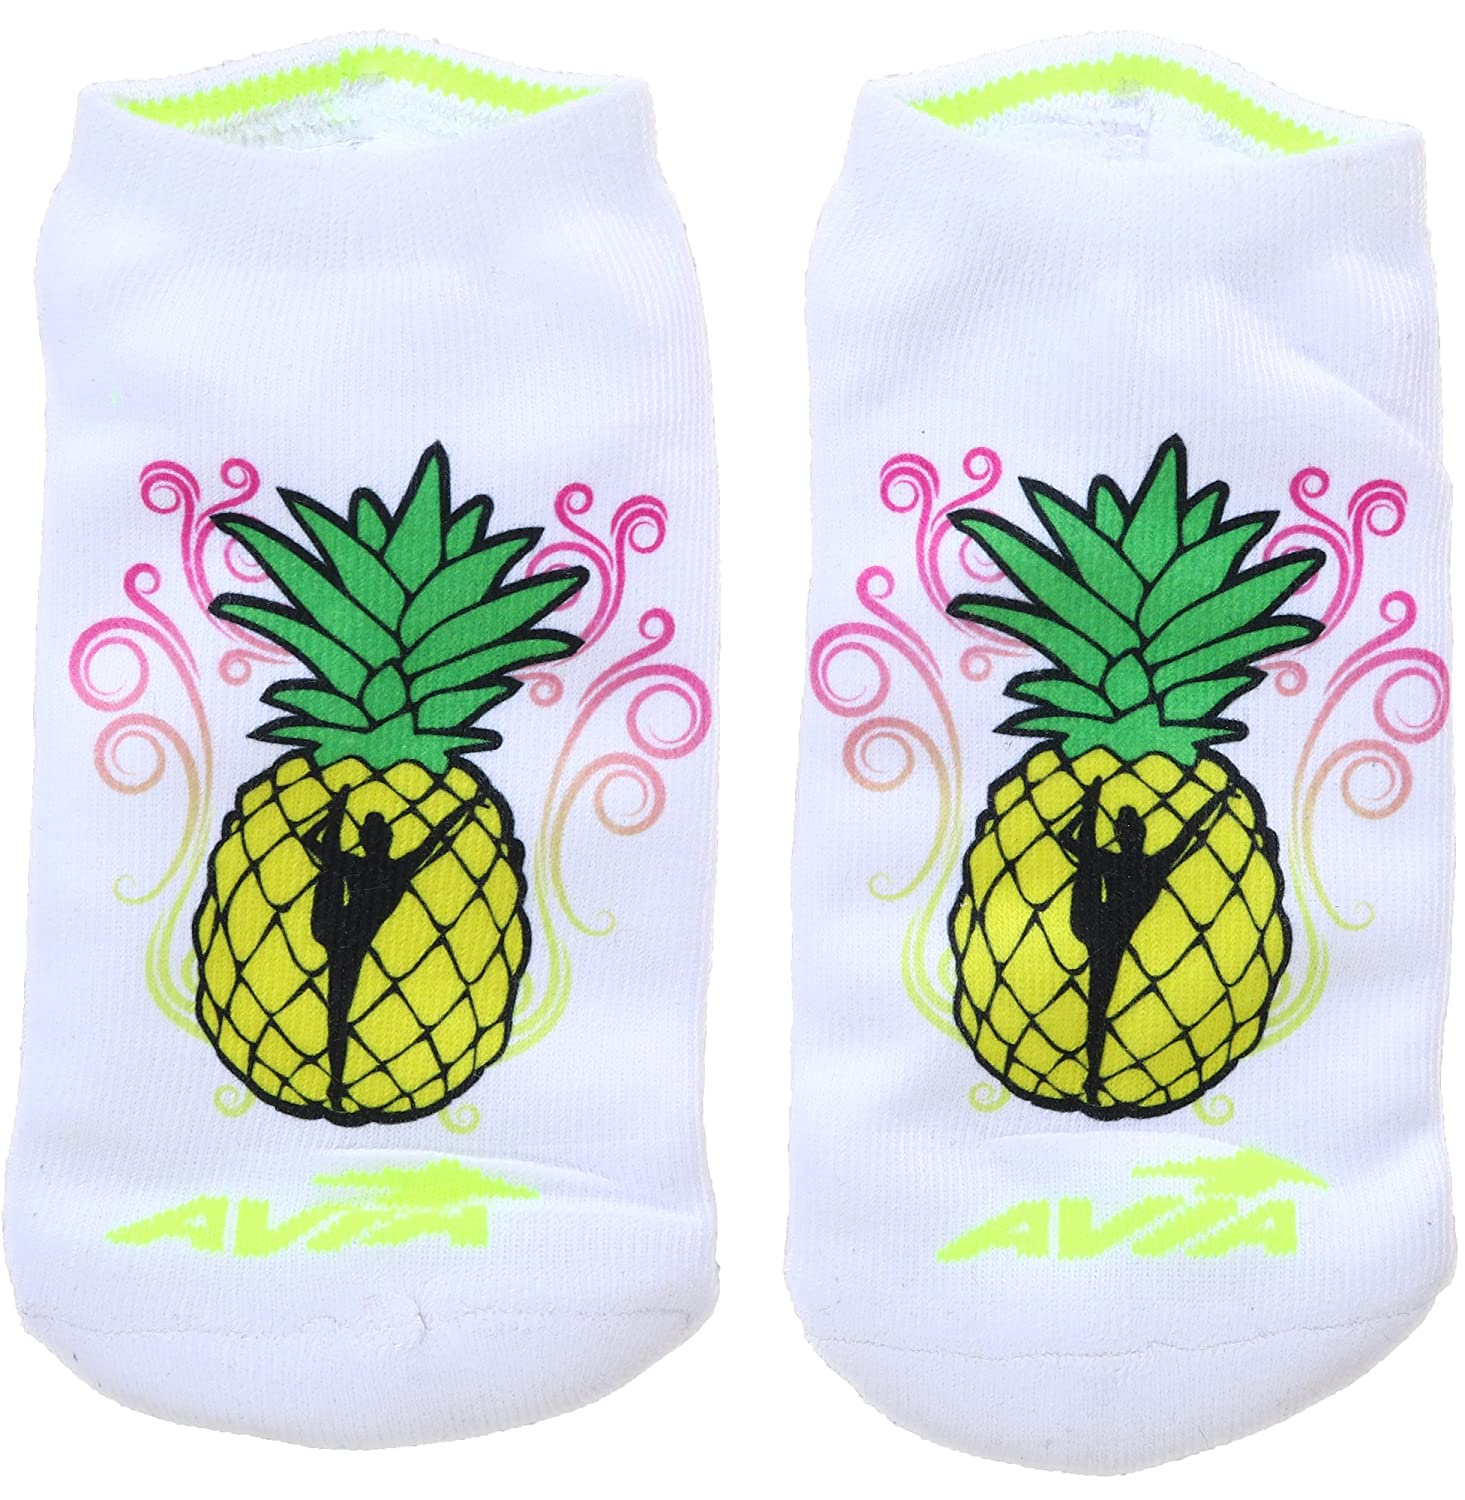 Many Styles Available Snowflake Designs Gymnastics Printed Socks